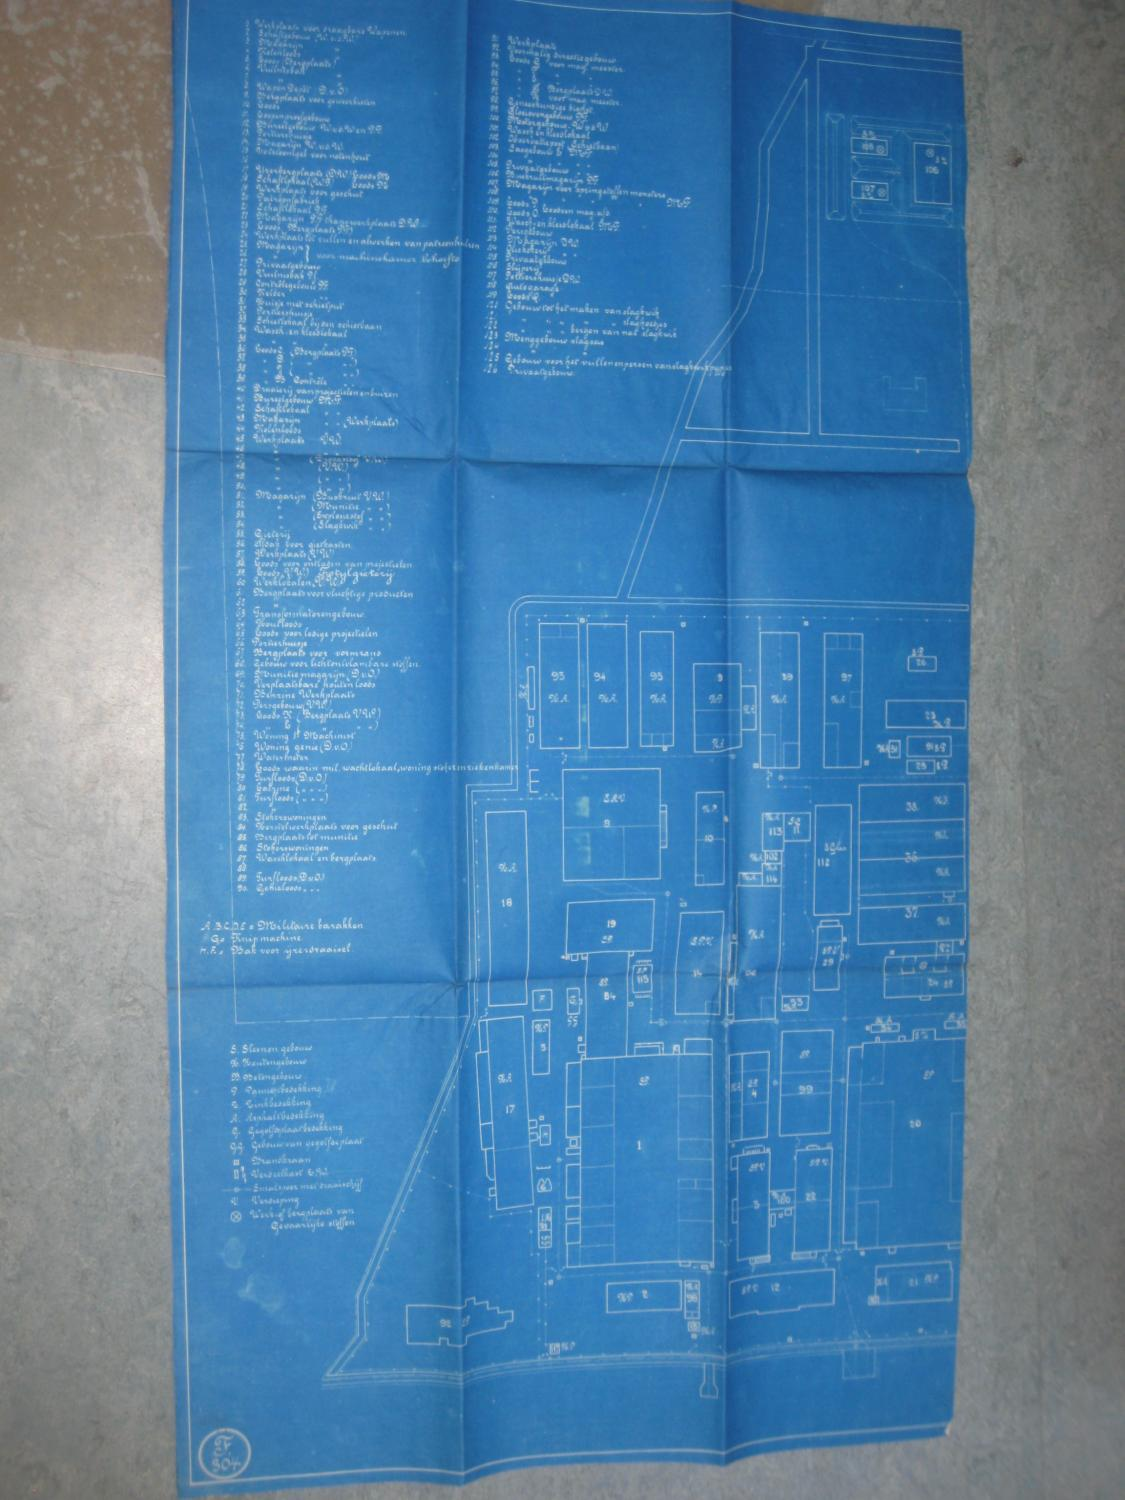 C En A Vesten Prewar Plan Map Blueprint Of Fokker Aviation